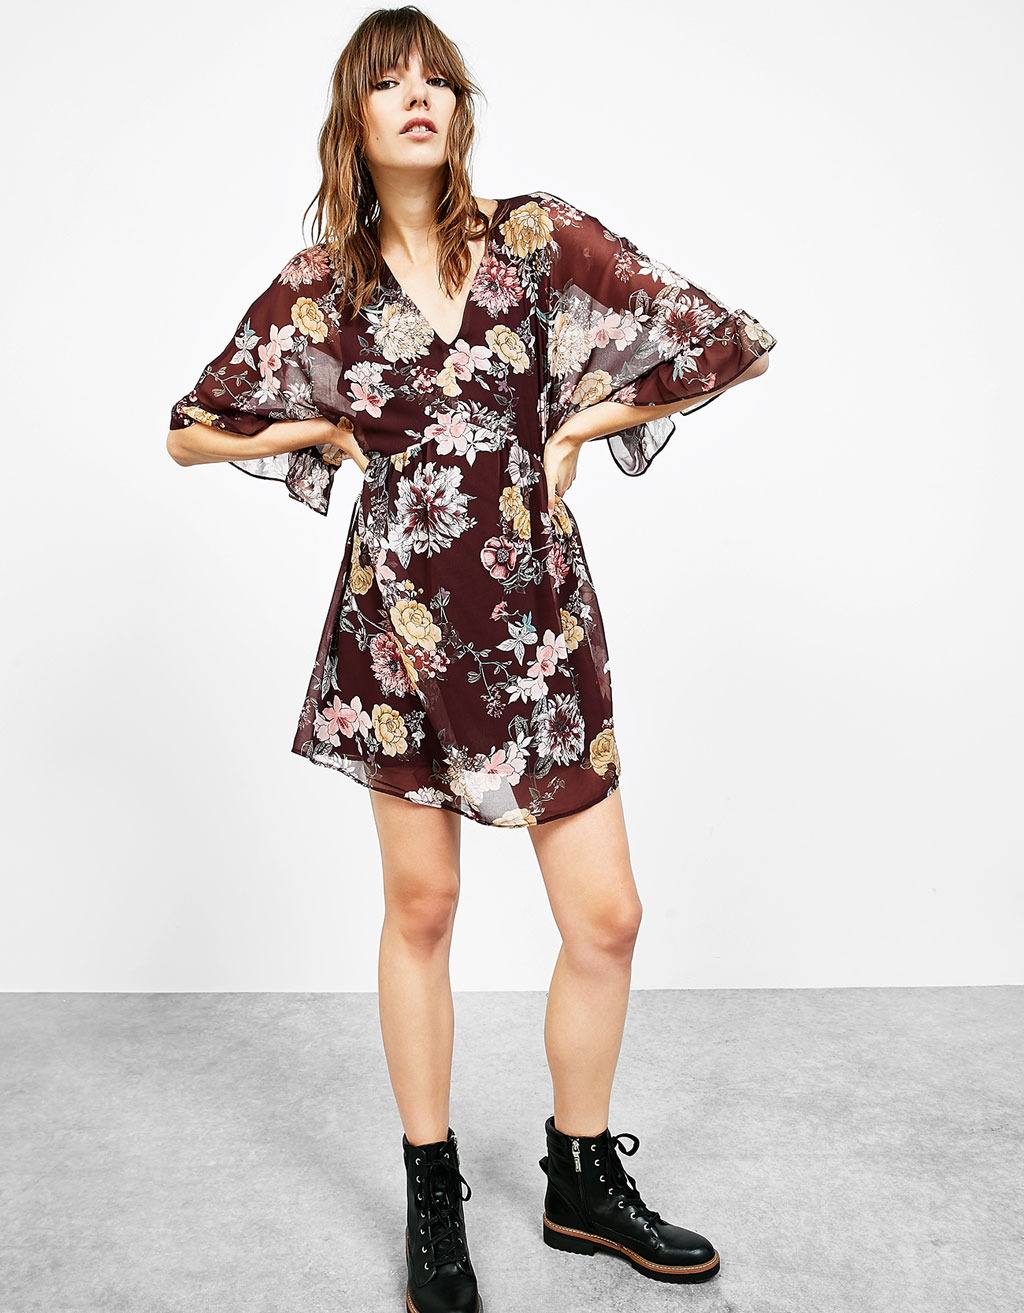 Floral print dress with 3/4 length sleeves